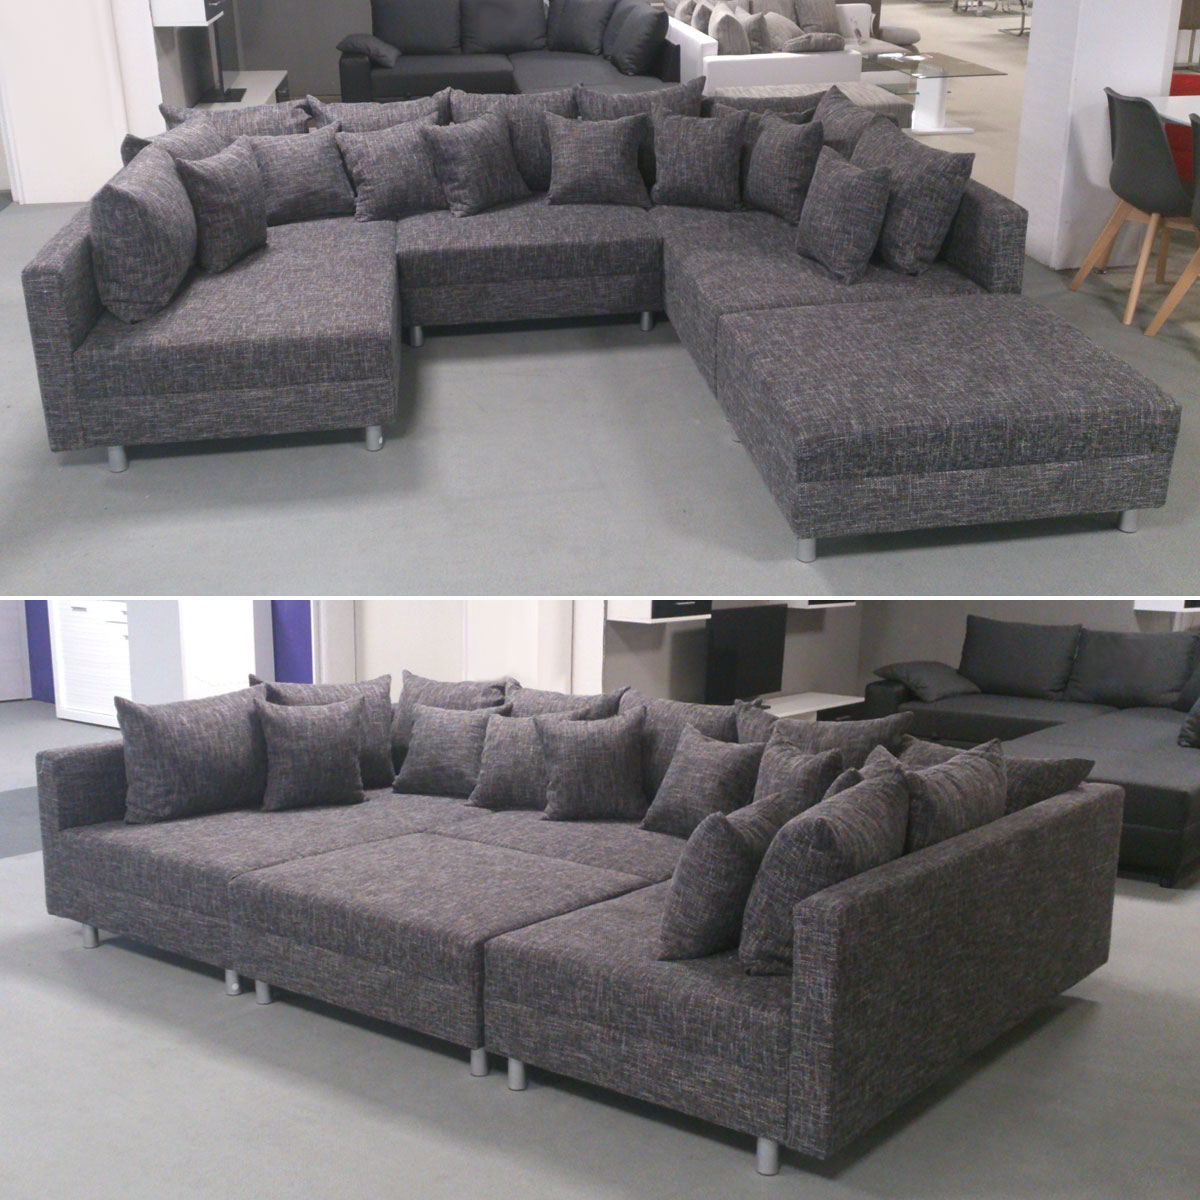 wohnlandschaft claudia xxl ecksofa couch sofa mit hocker webstoff lawa 17 ebay. Black Bedroom Furniture Sets. Home Design Ideas